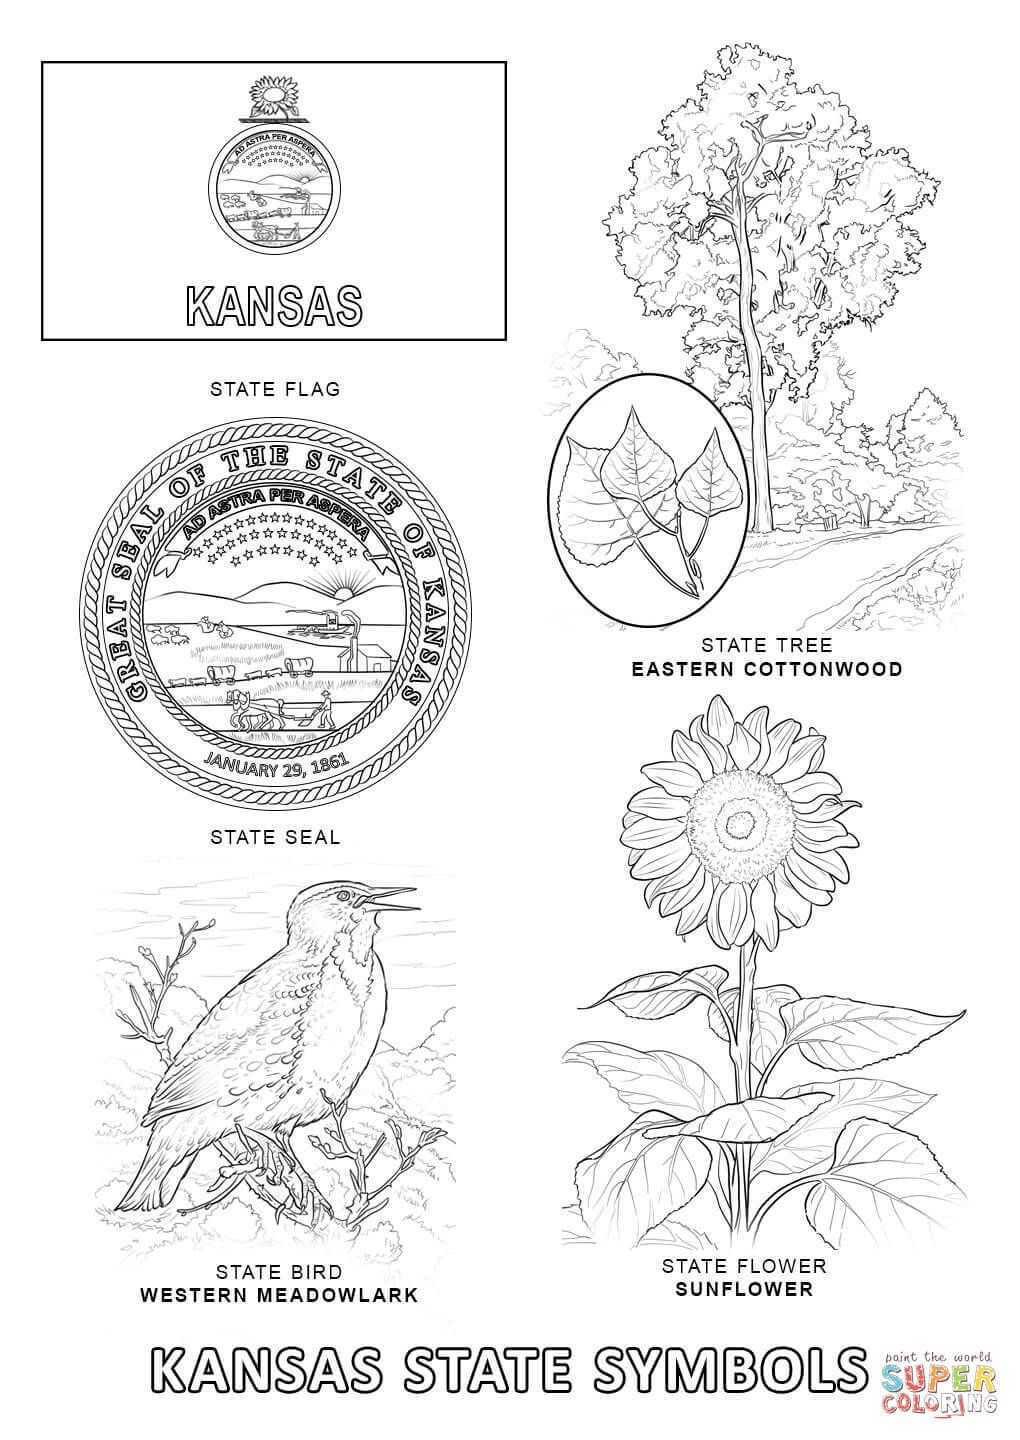 Kansas State Symbols Super Coloring State Symbols Kansas Day